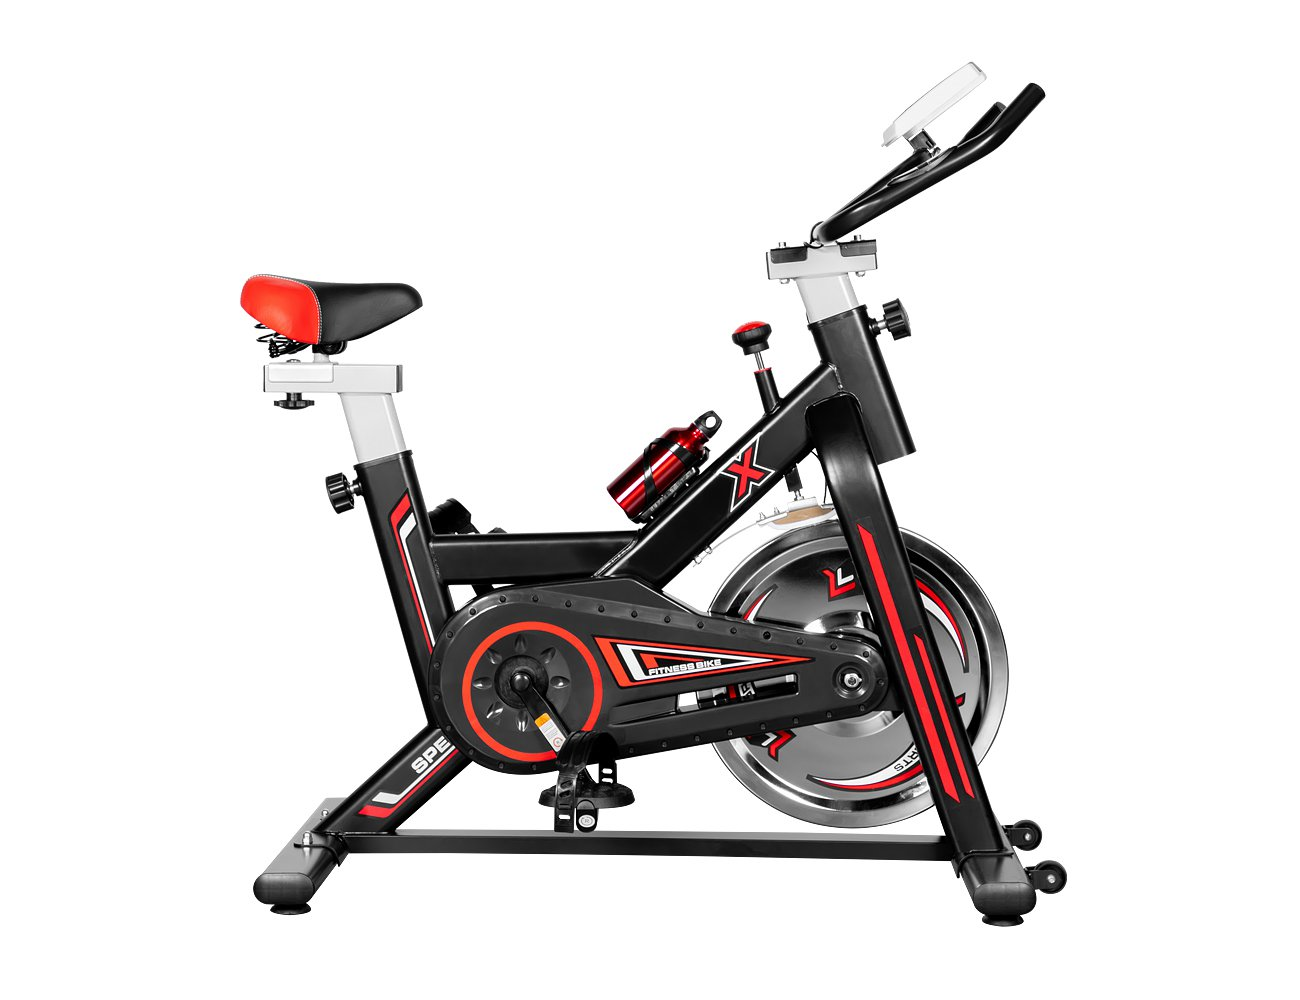 Adjustable Exercycle Exercise Bike